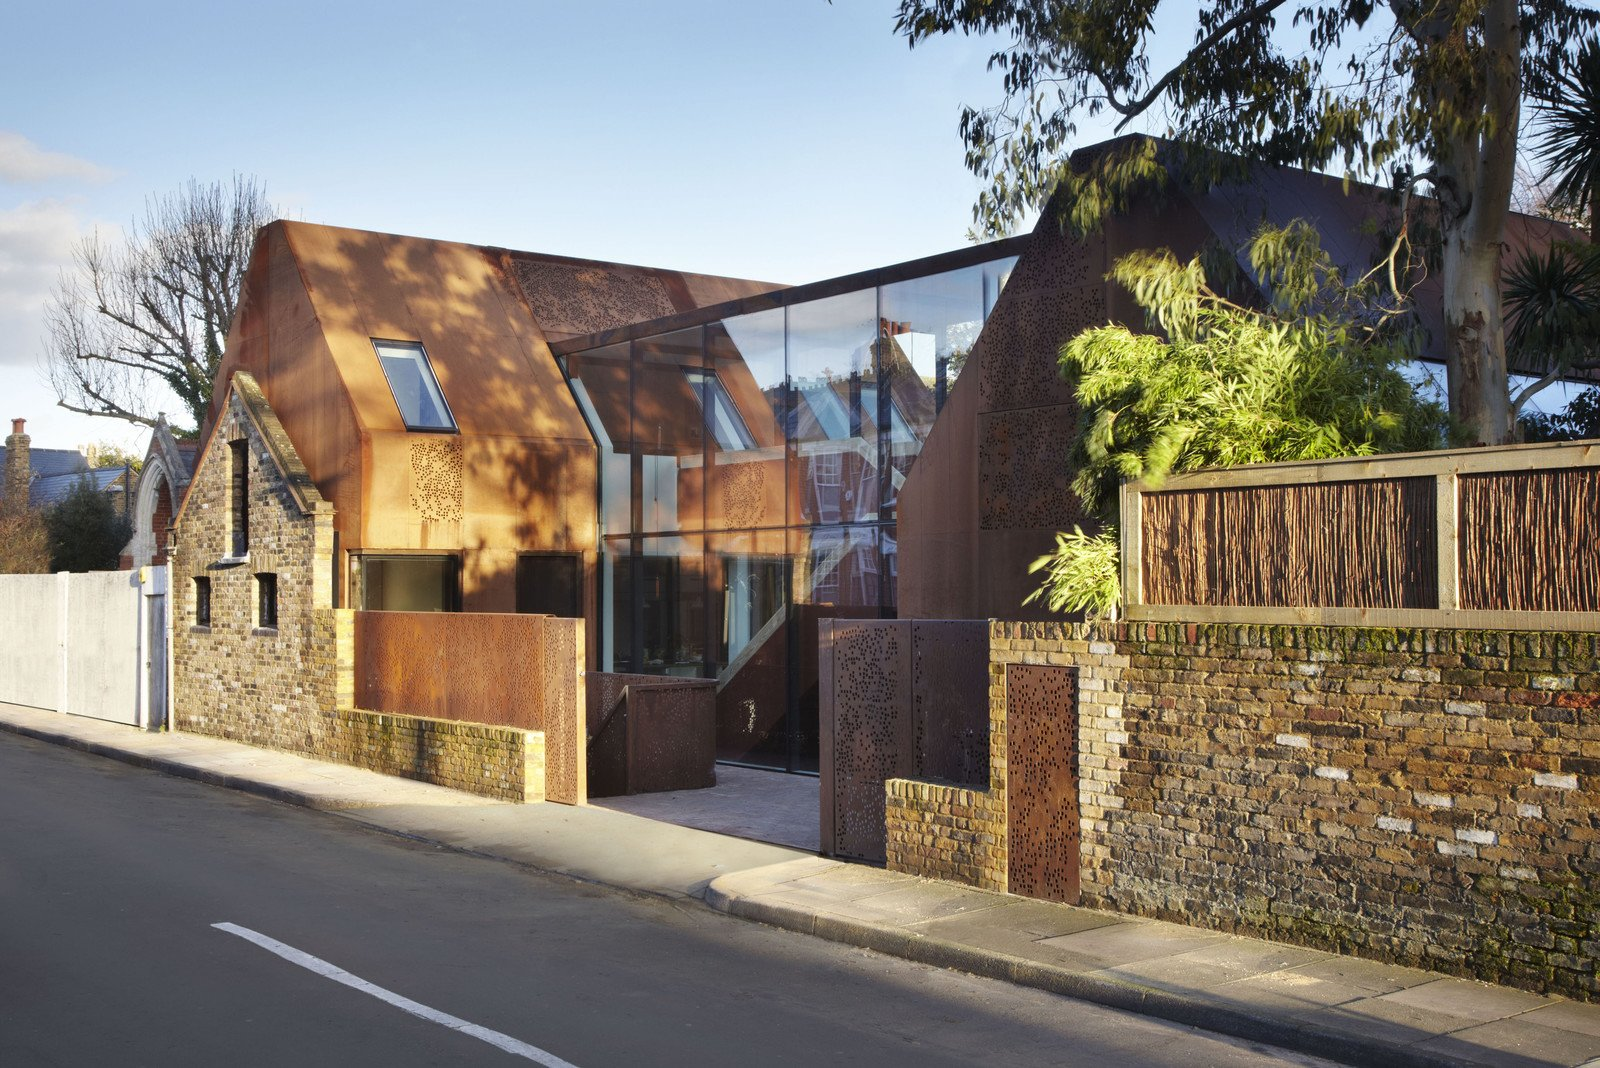 A modern renovation of a 19th centry brick building in the Kew Green Conservation Area in southwest London, Kew House by Piercy&Company combines glass and steel for a stunning effect.